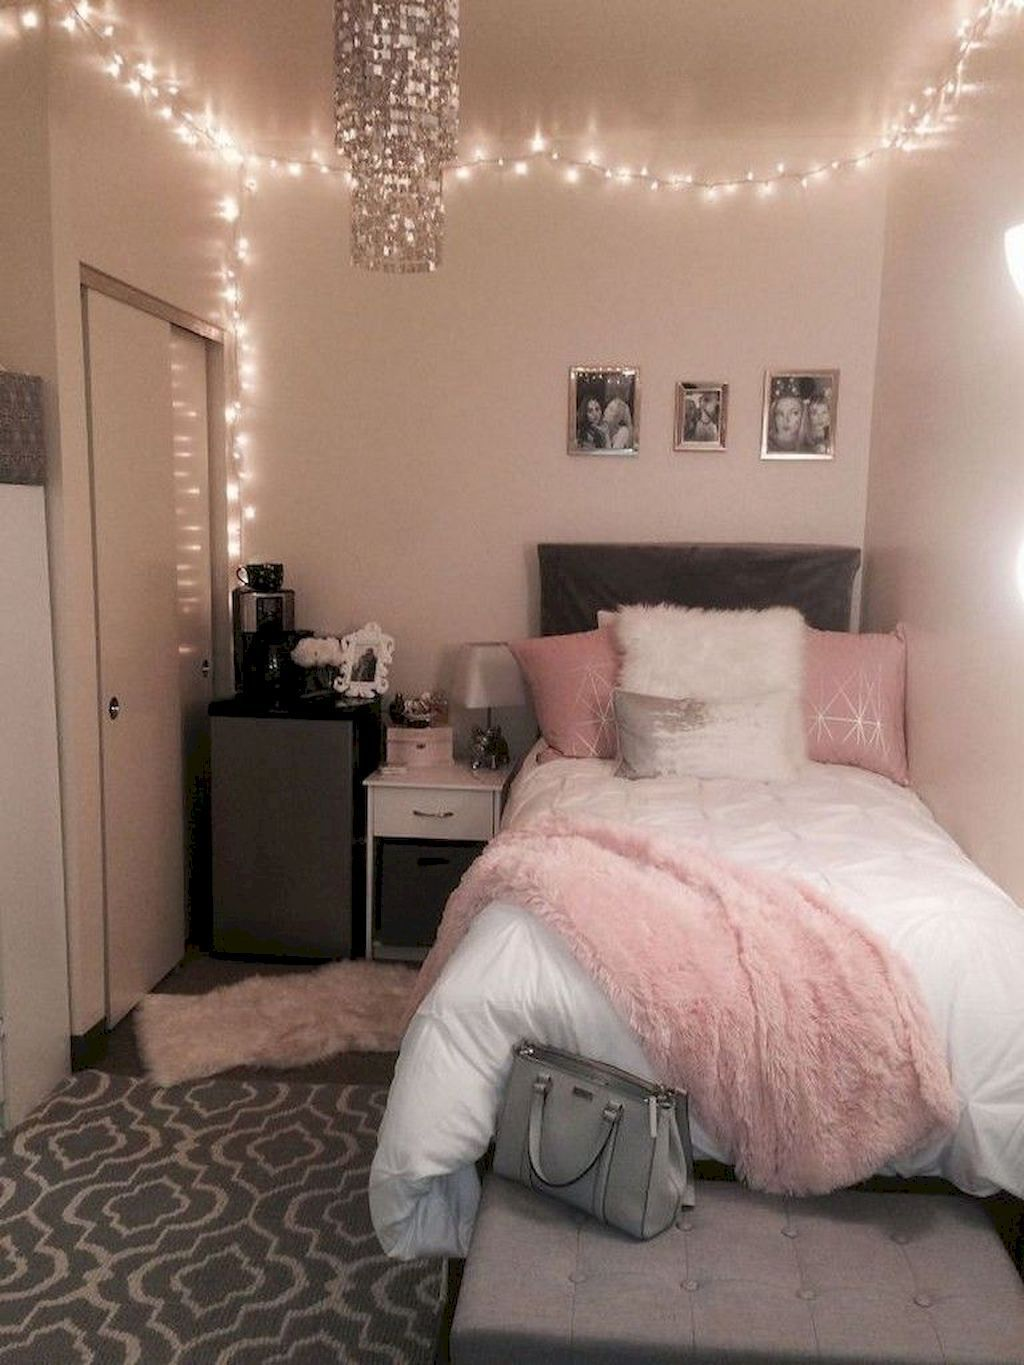 Low Budget Small Bedroom Decorating Ideas On A Budget